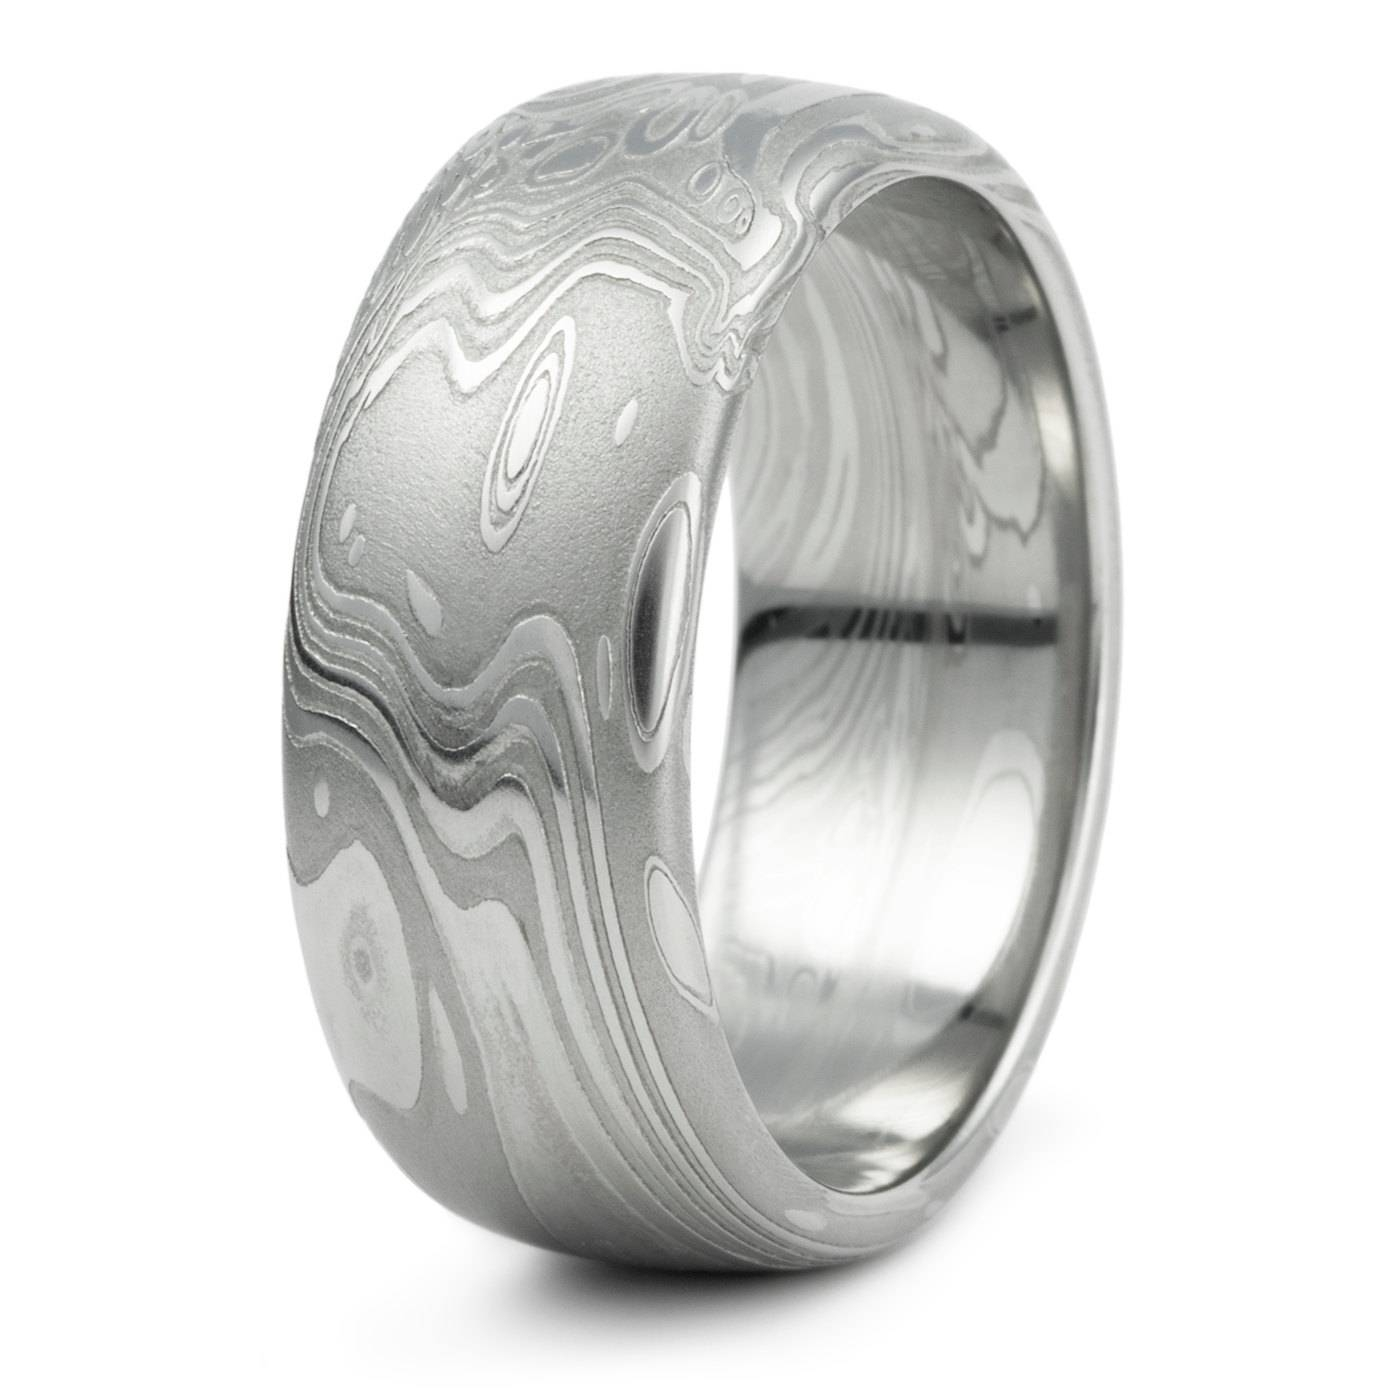 Damascus Steel Domed Wedding Ring Men's Unique Organic Throughout Steel Wedding Bands (View 7 of 15)